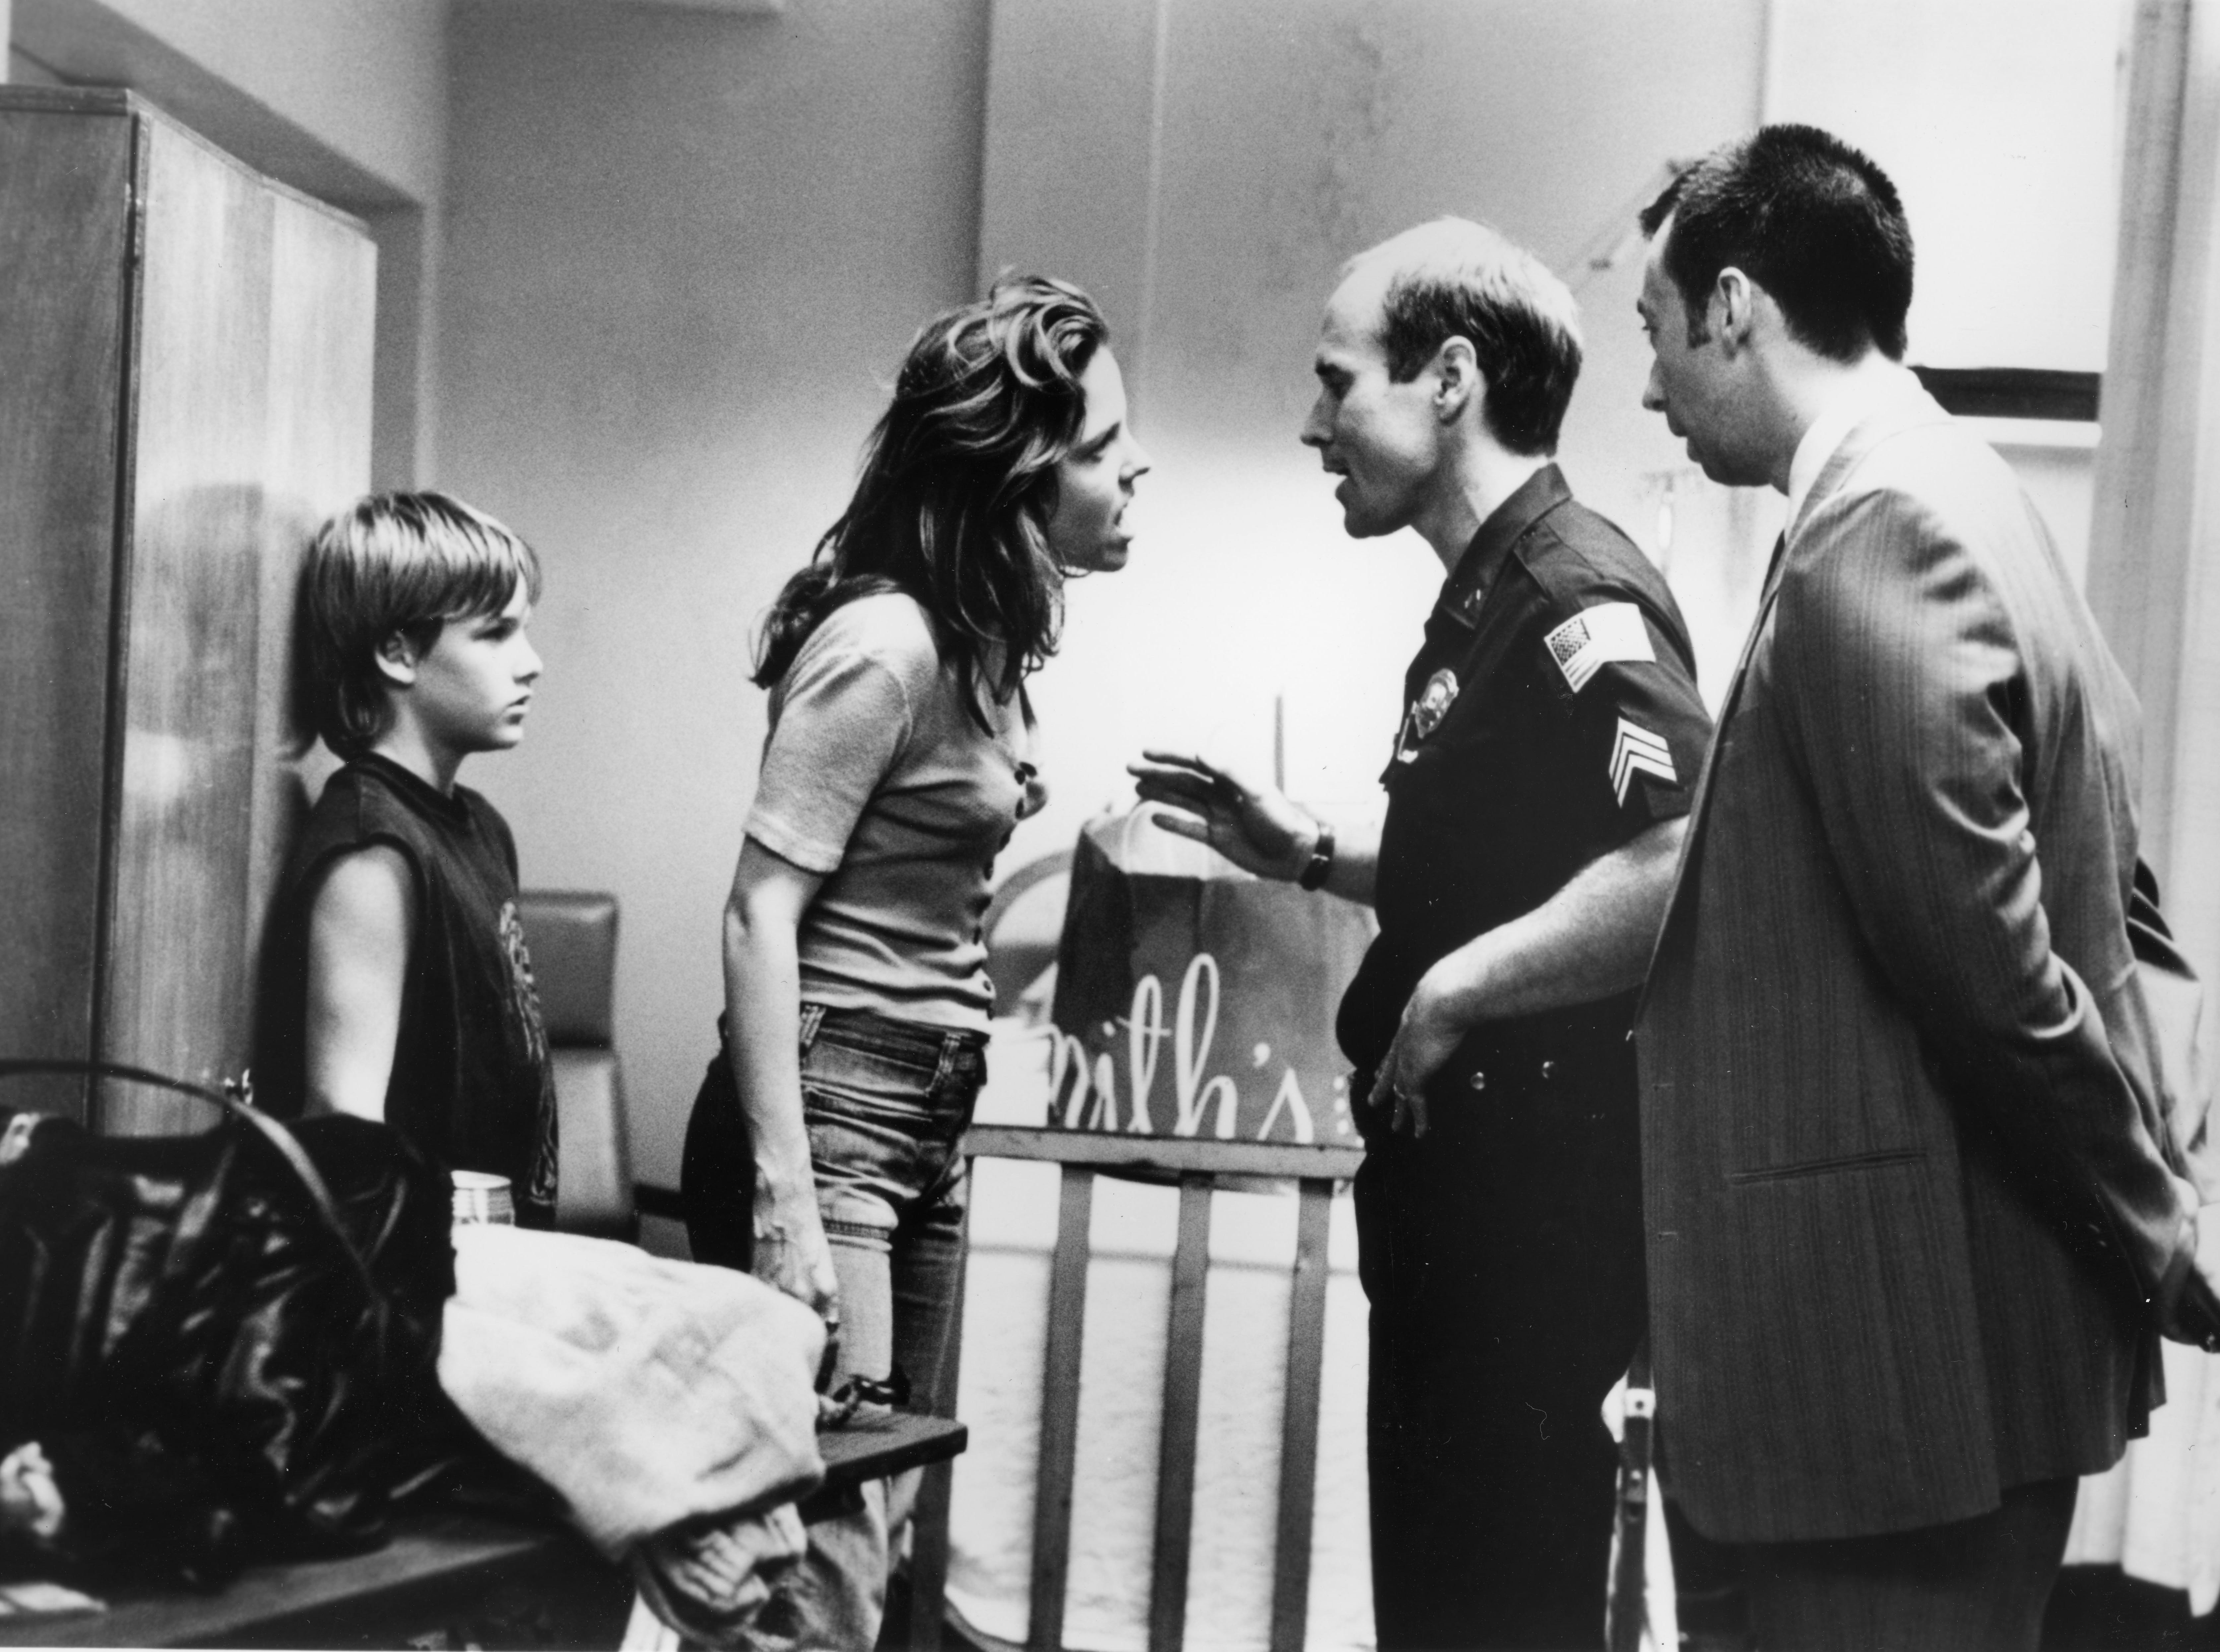 "Young Mark Sway (Brad Renfro) and his mother, Dianne Sway (Mary-Louise Parker), face the intimidating questions of Sgt. Hardy (Will Patton) and Detective Nasser (Mark Cabus) in Warner Bros.' suspense-thriller, ""The Client"", based on the best-selling novel by John Grisham and starring Susan Sarandon and Tommy Lee Jones."